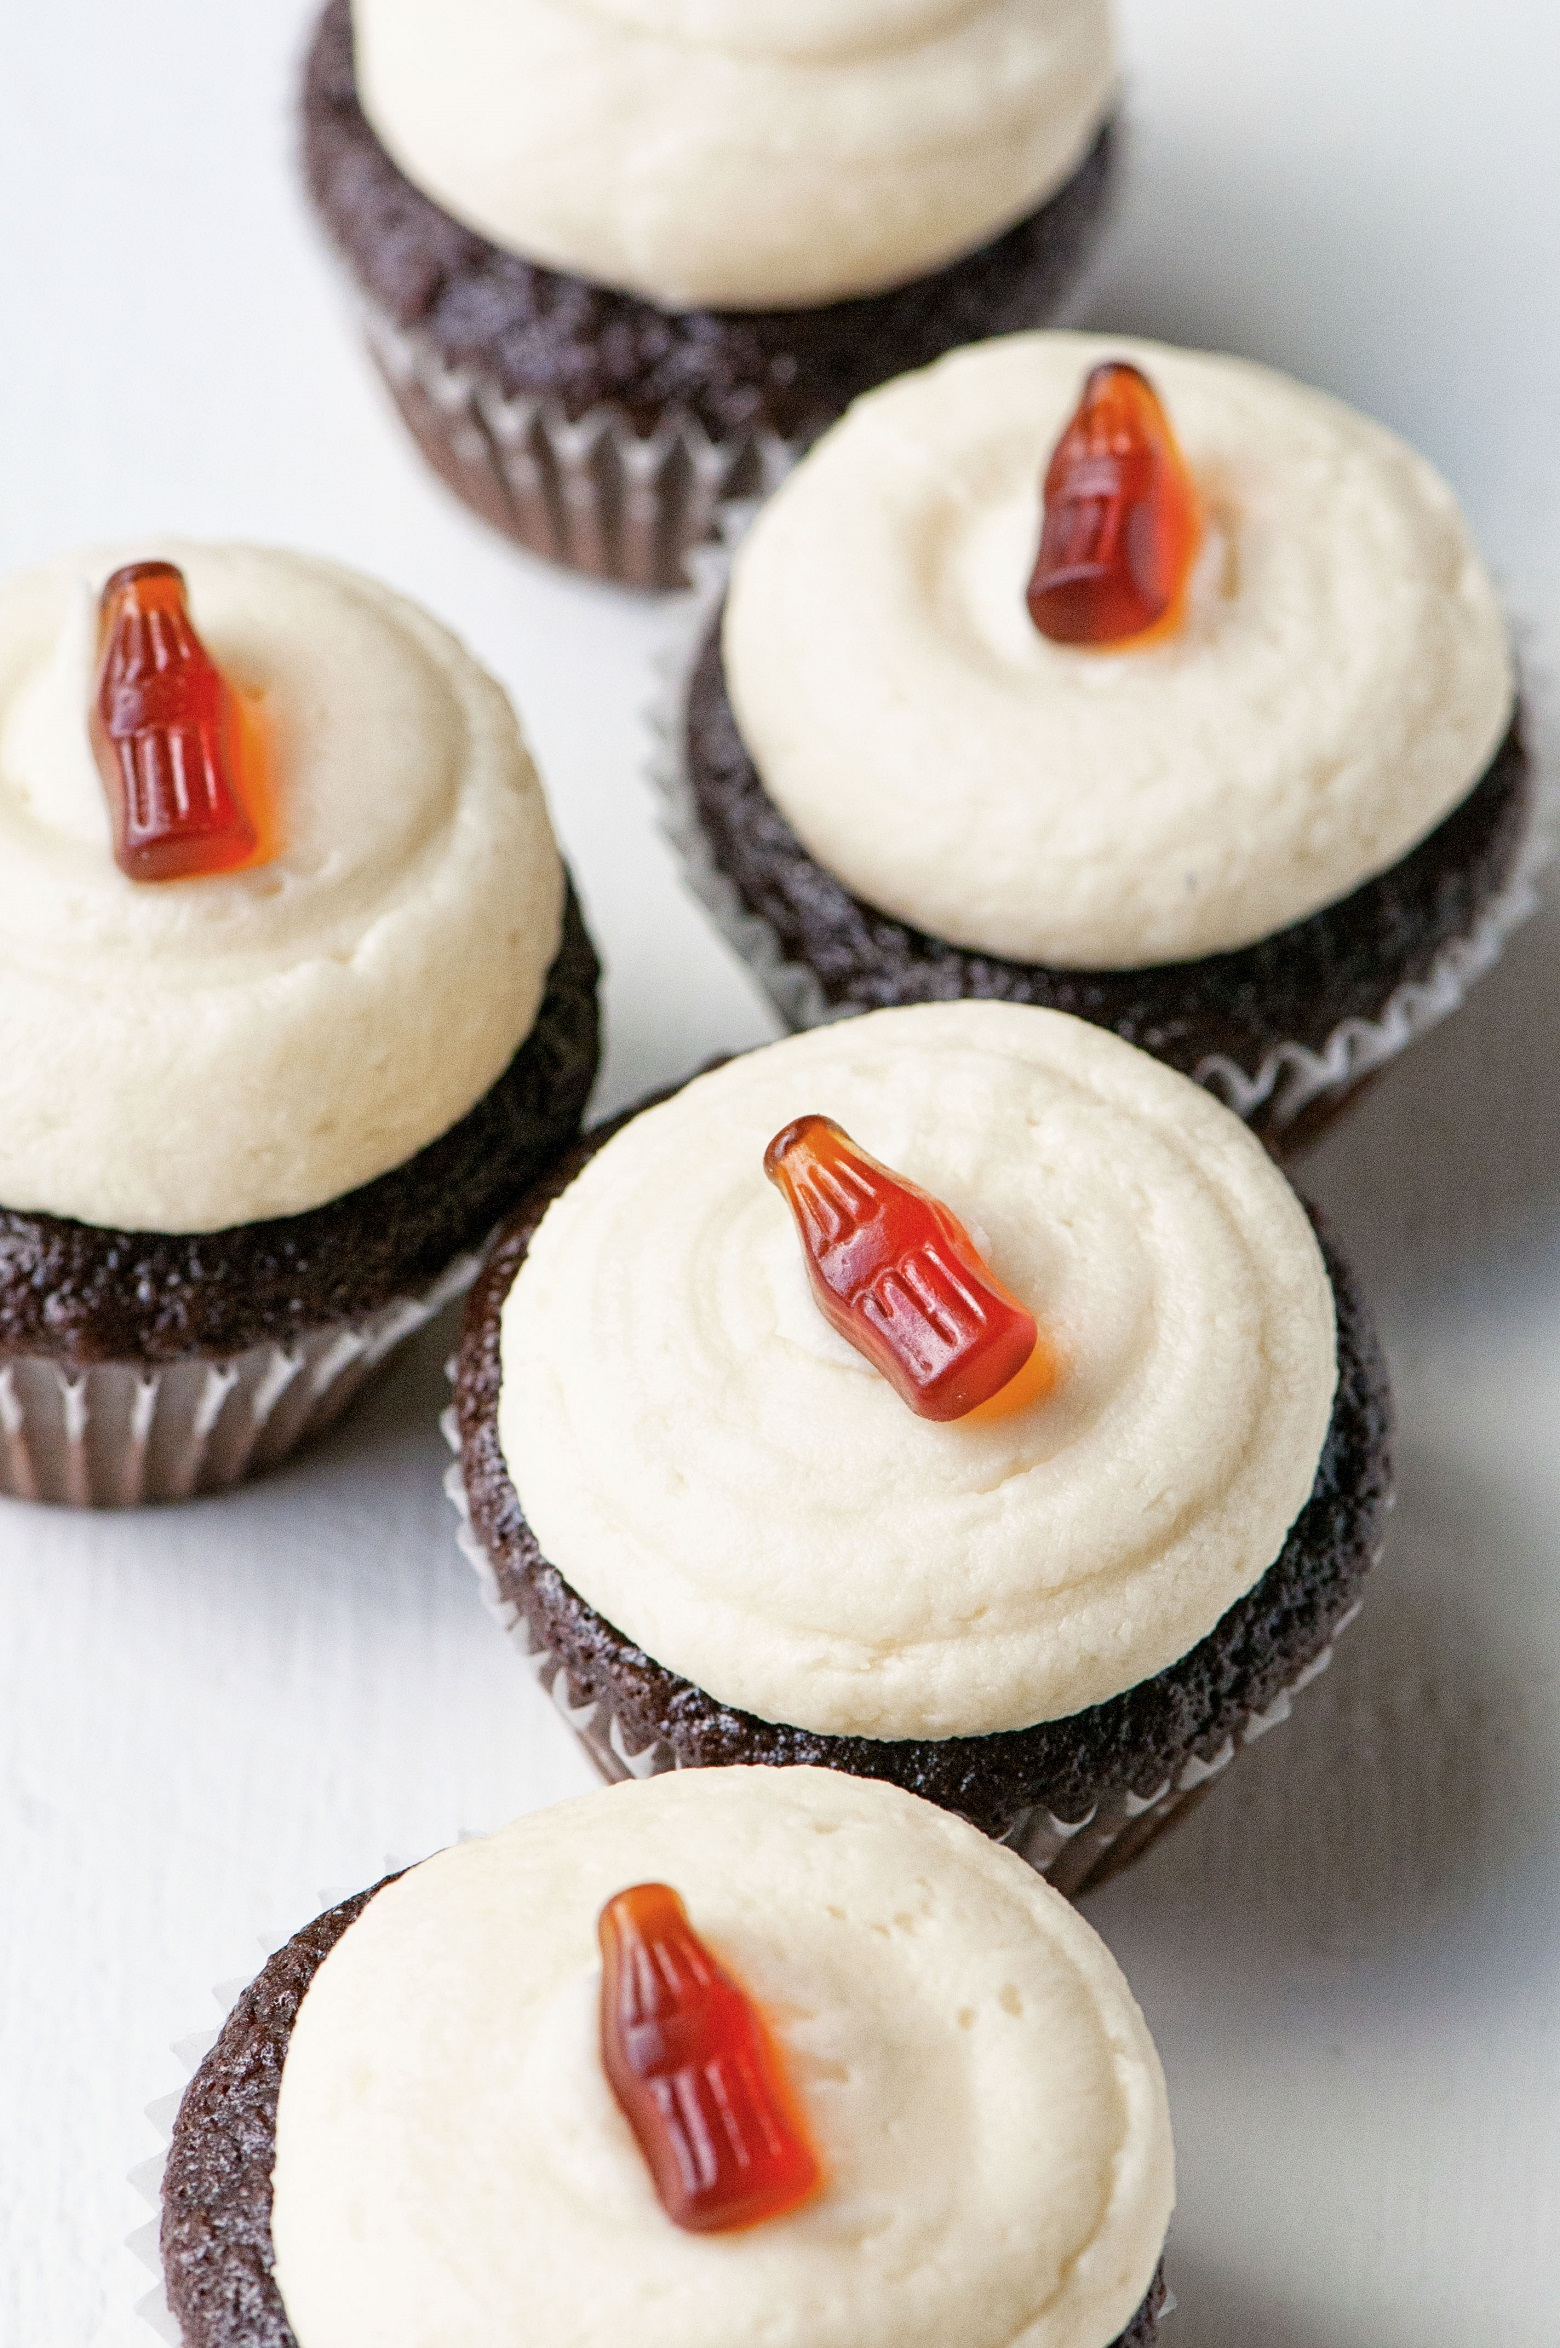 Jack and Coke Chocolate Cupcakes